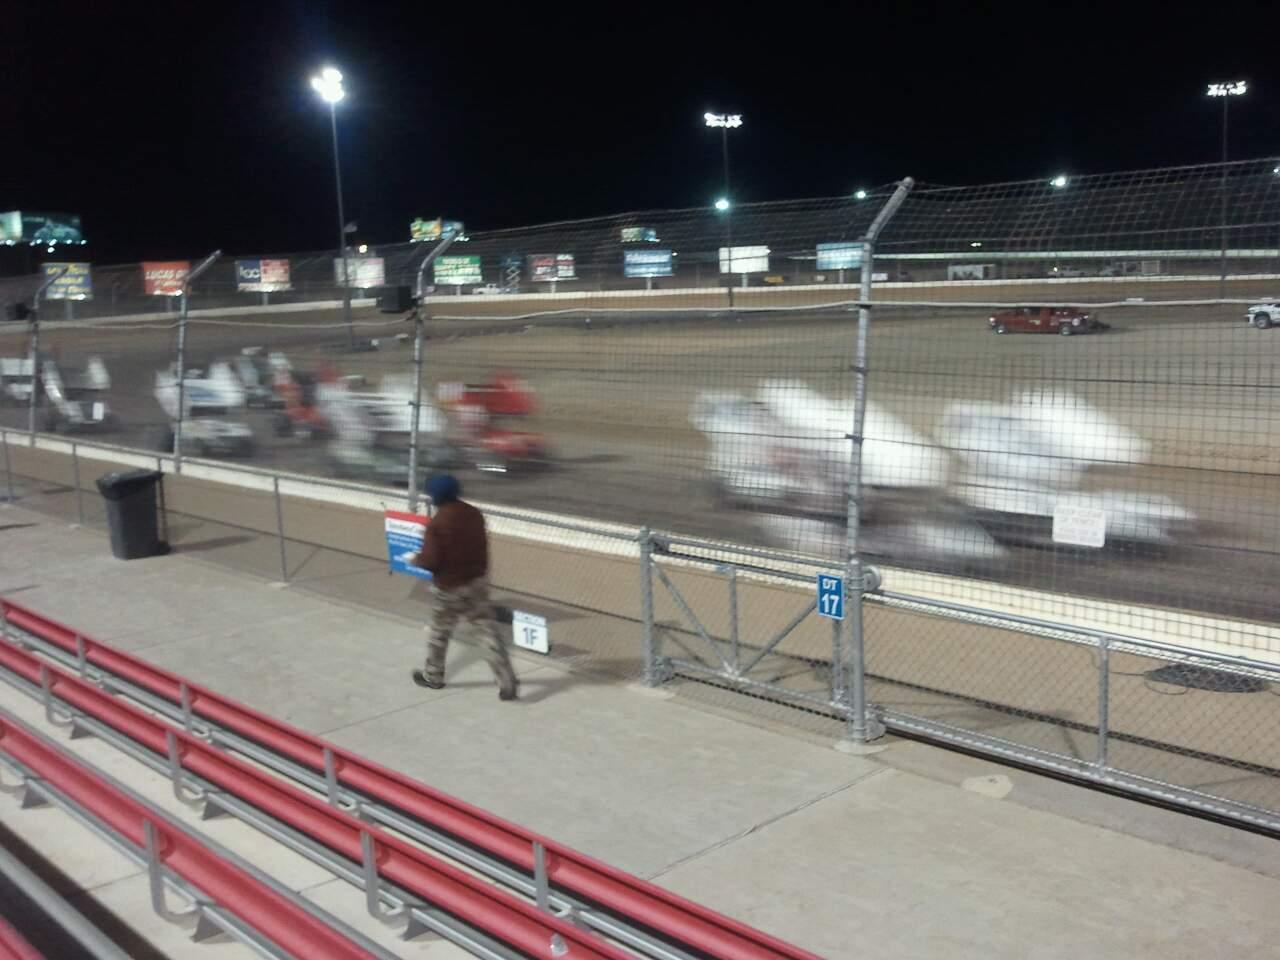 Las Vegas Dirt Track Section front Row 18 Seat 24